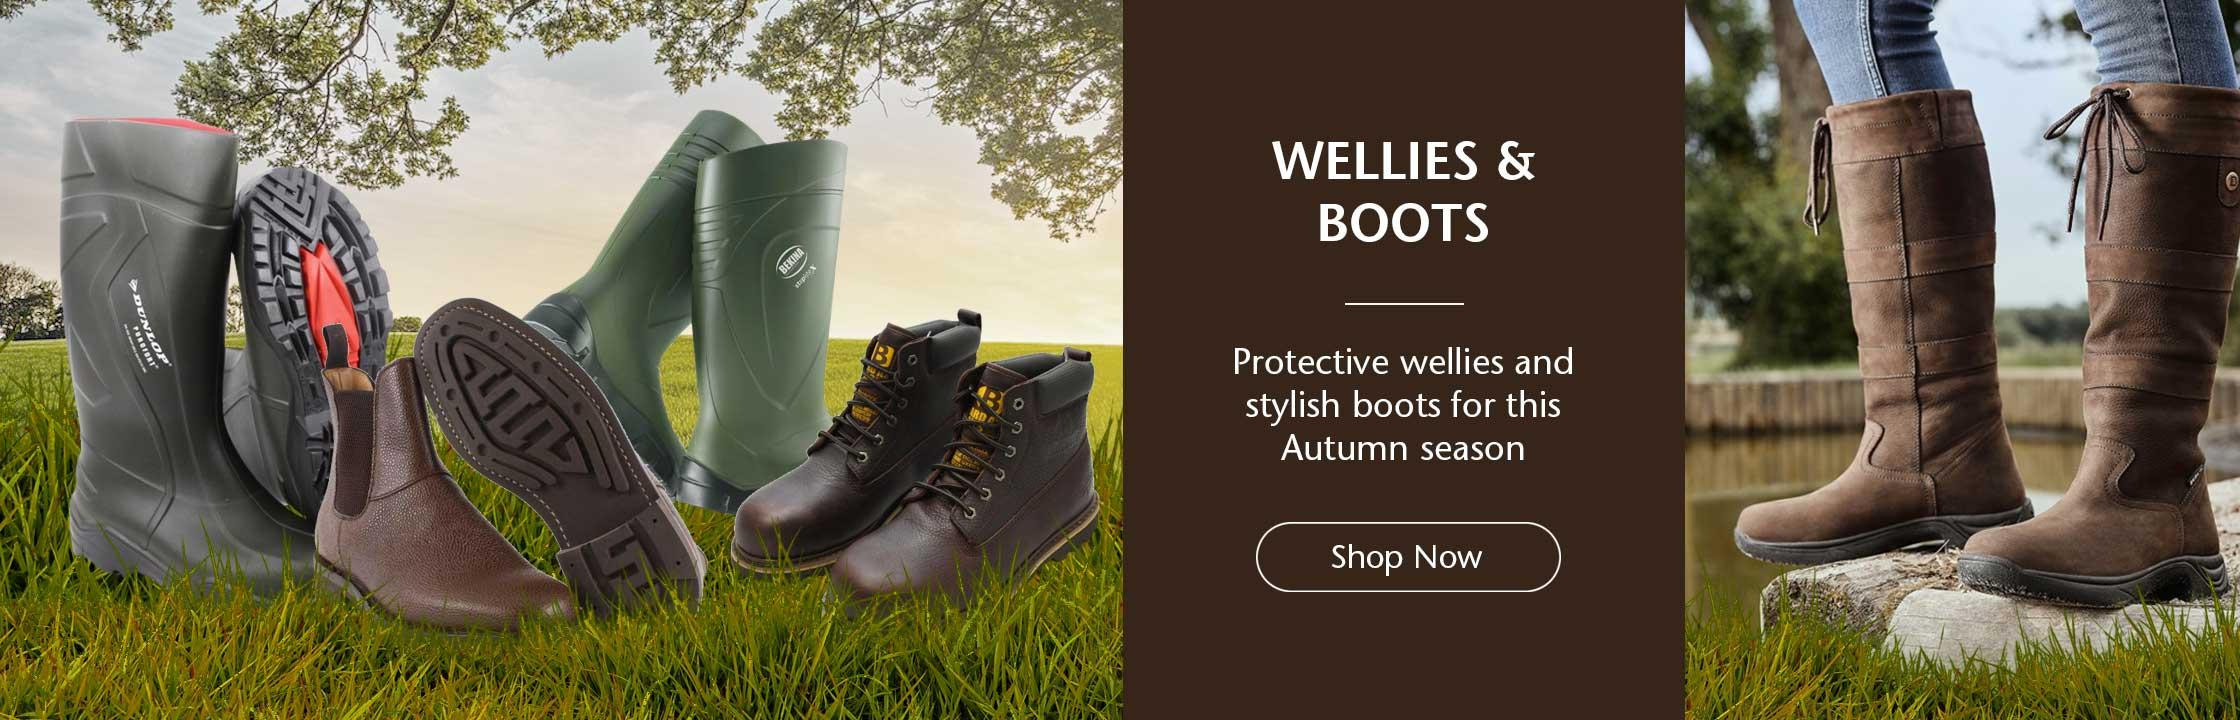 Wellingtons & Boots